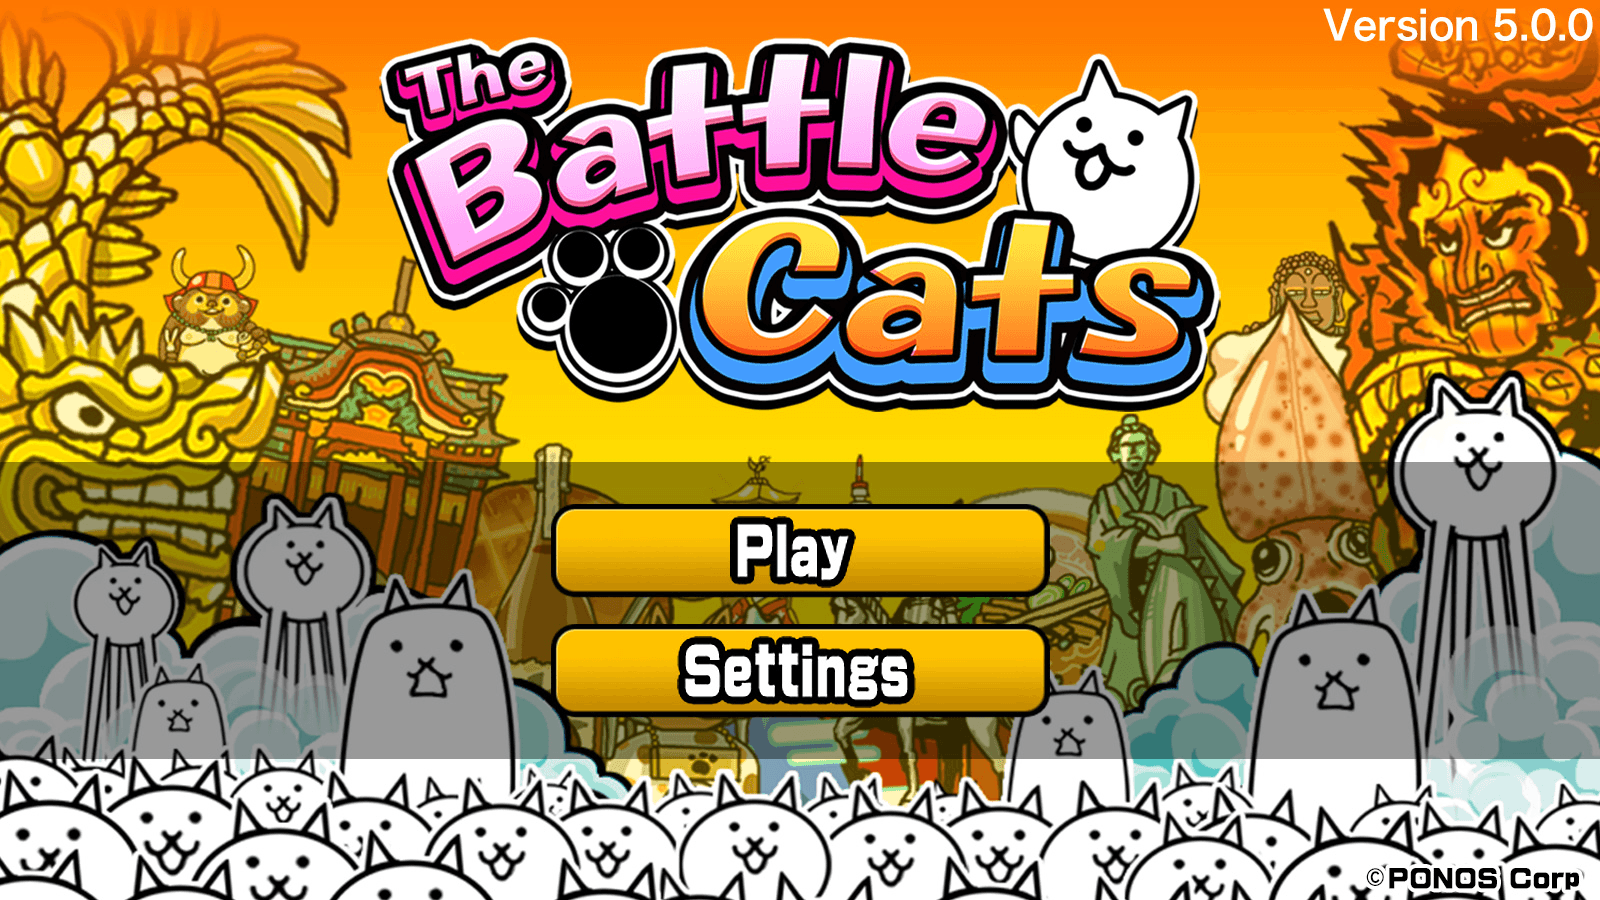 The Battle Cats is a strategy game developed by PONOS. The